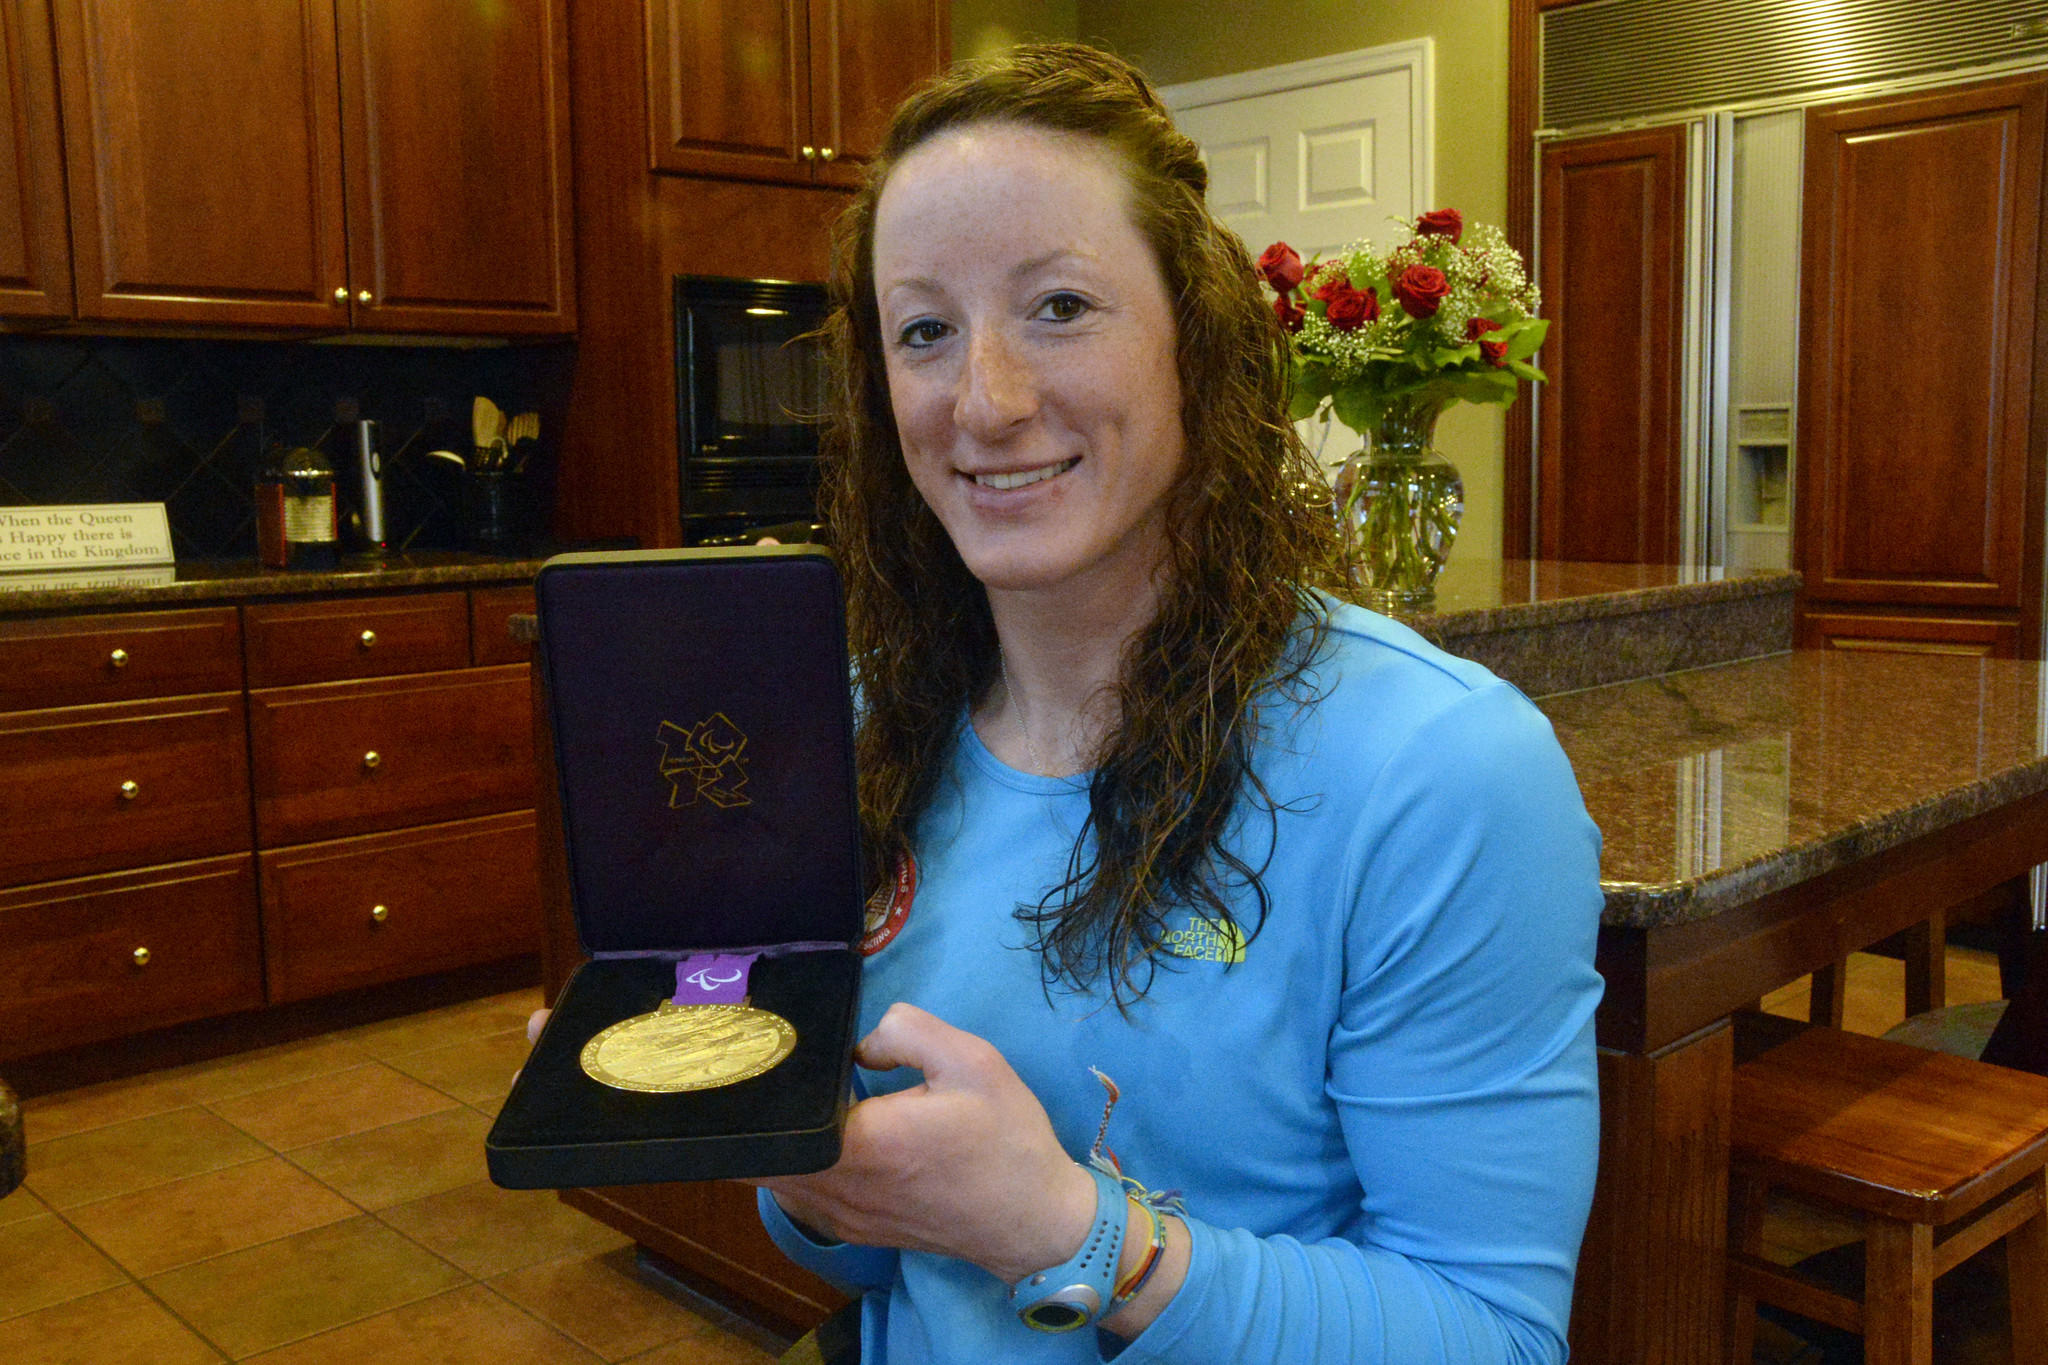 Paralympian wheelchair racer Tatyana McFadden, 24, shows off her 2012 London Paralympics gold medal.